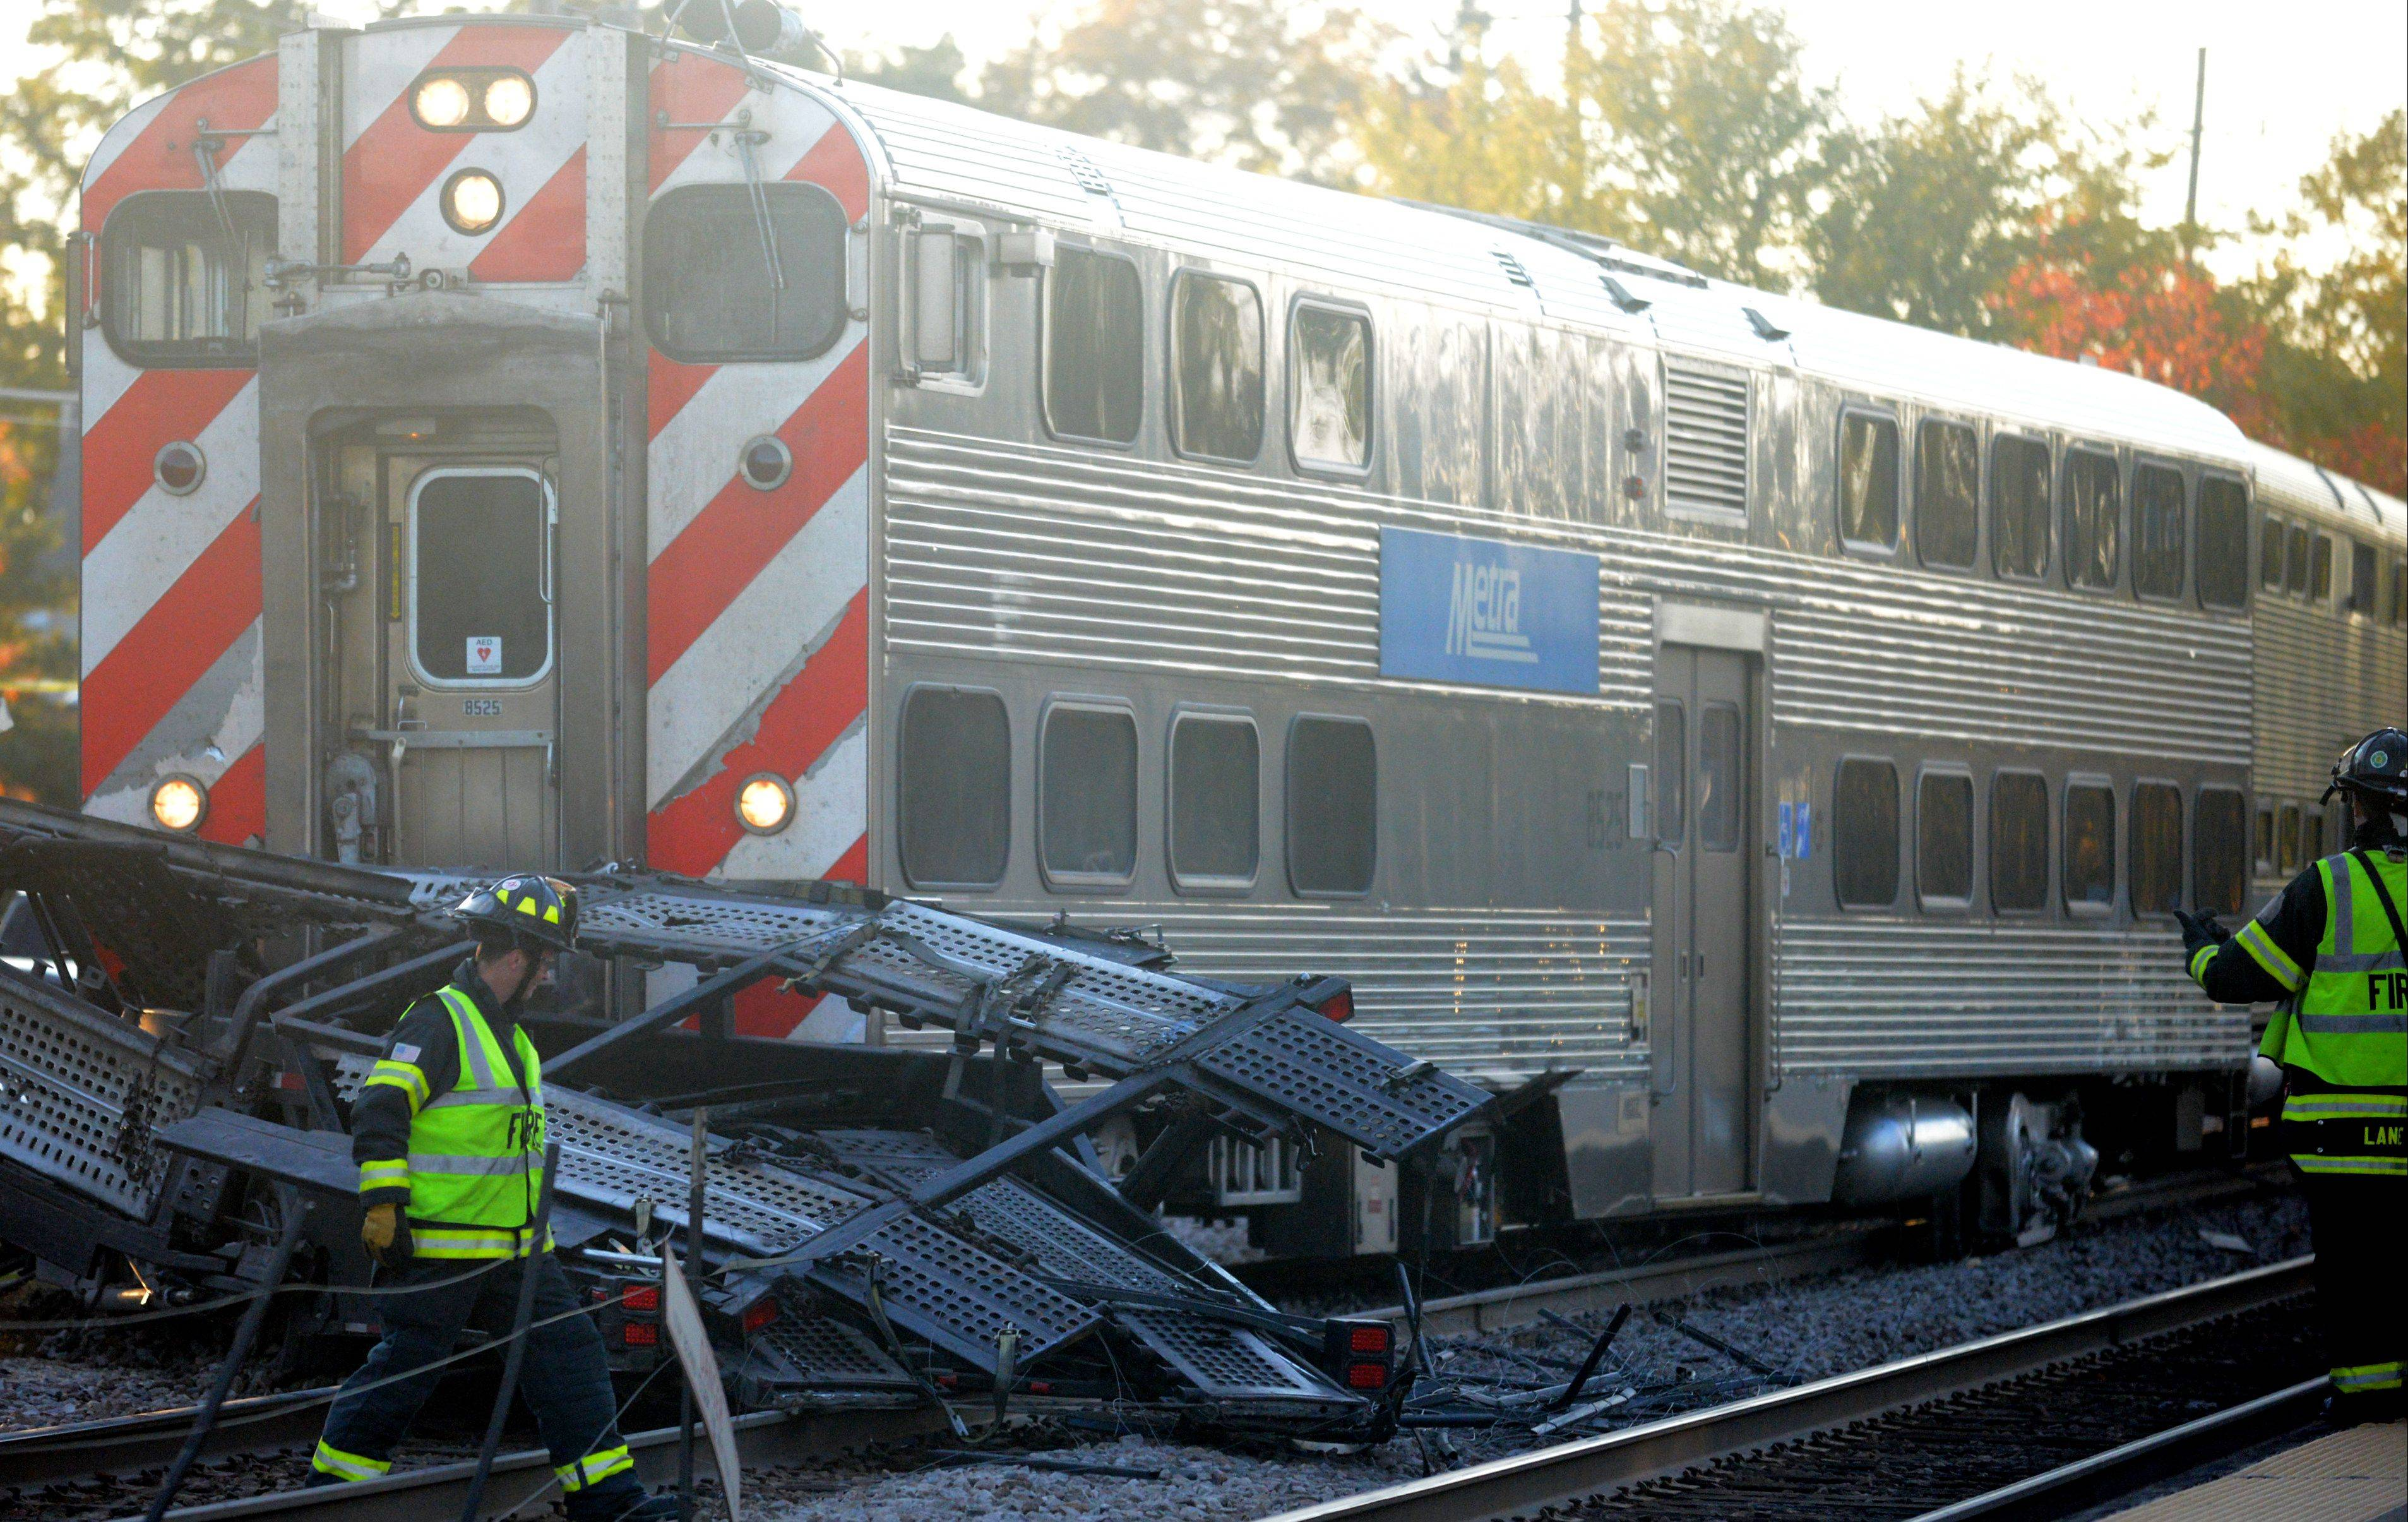 A Metra commuter train just west of the Bartlett train station struck a semitrailer truck loaded with automobiles on Monday evening. Two people were sent to the hospital.